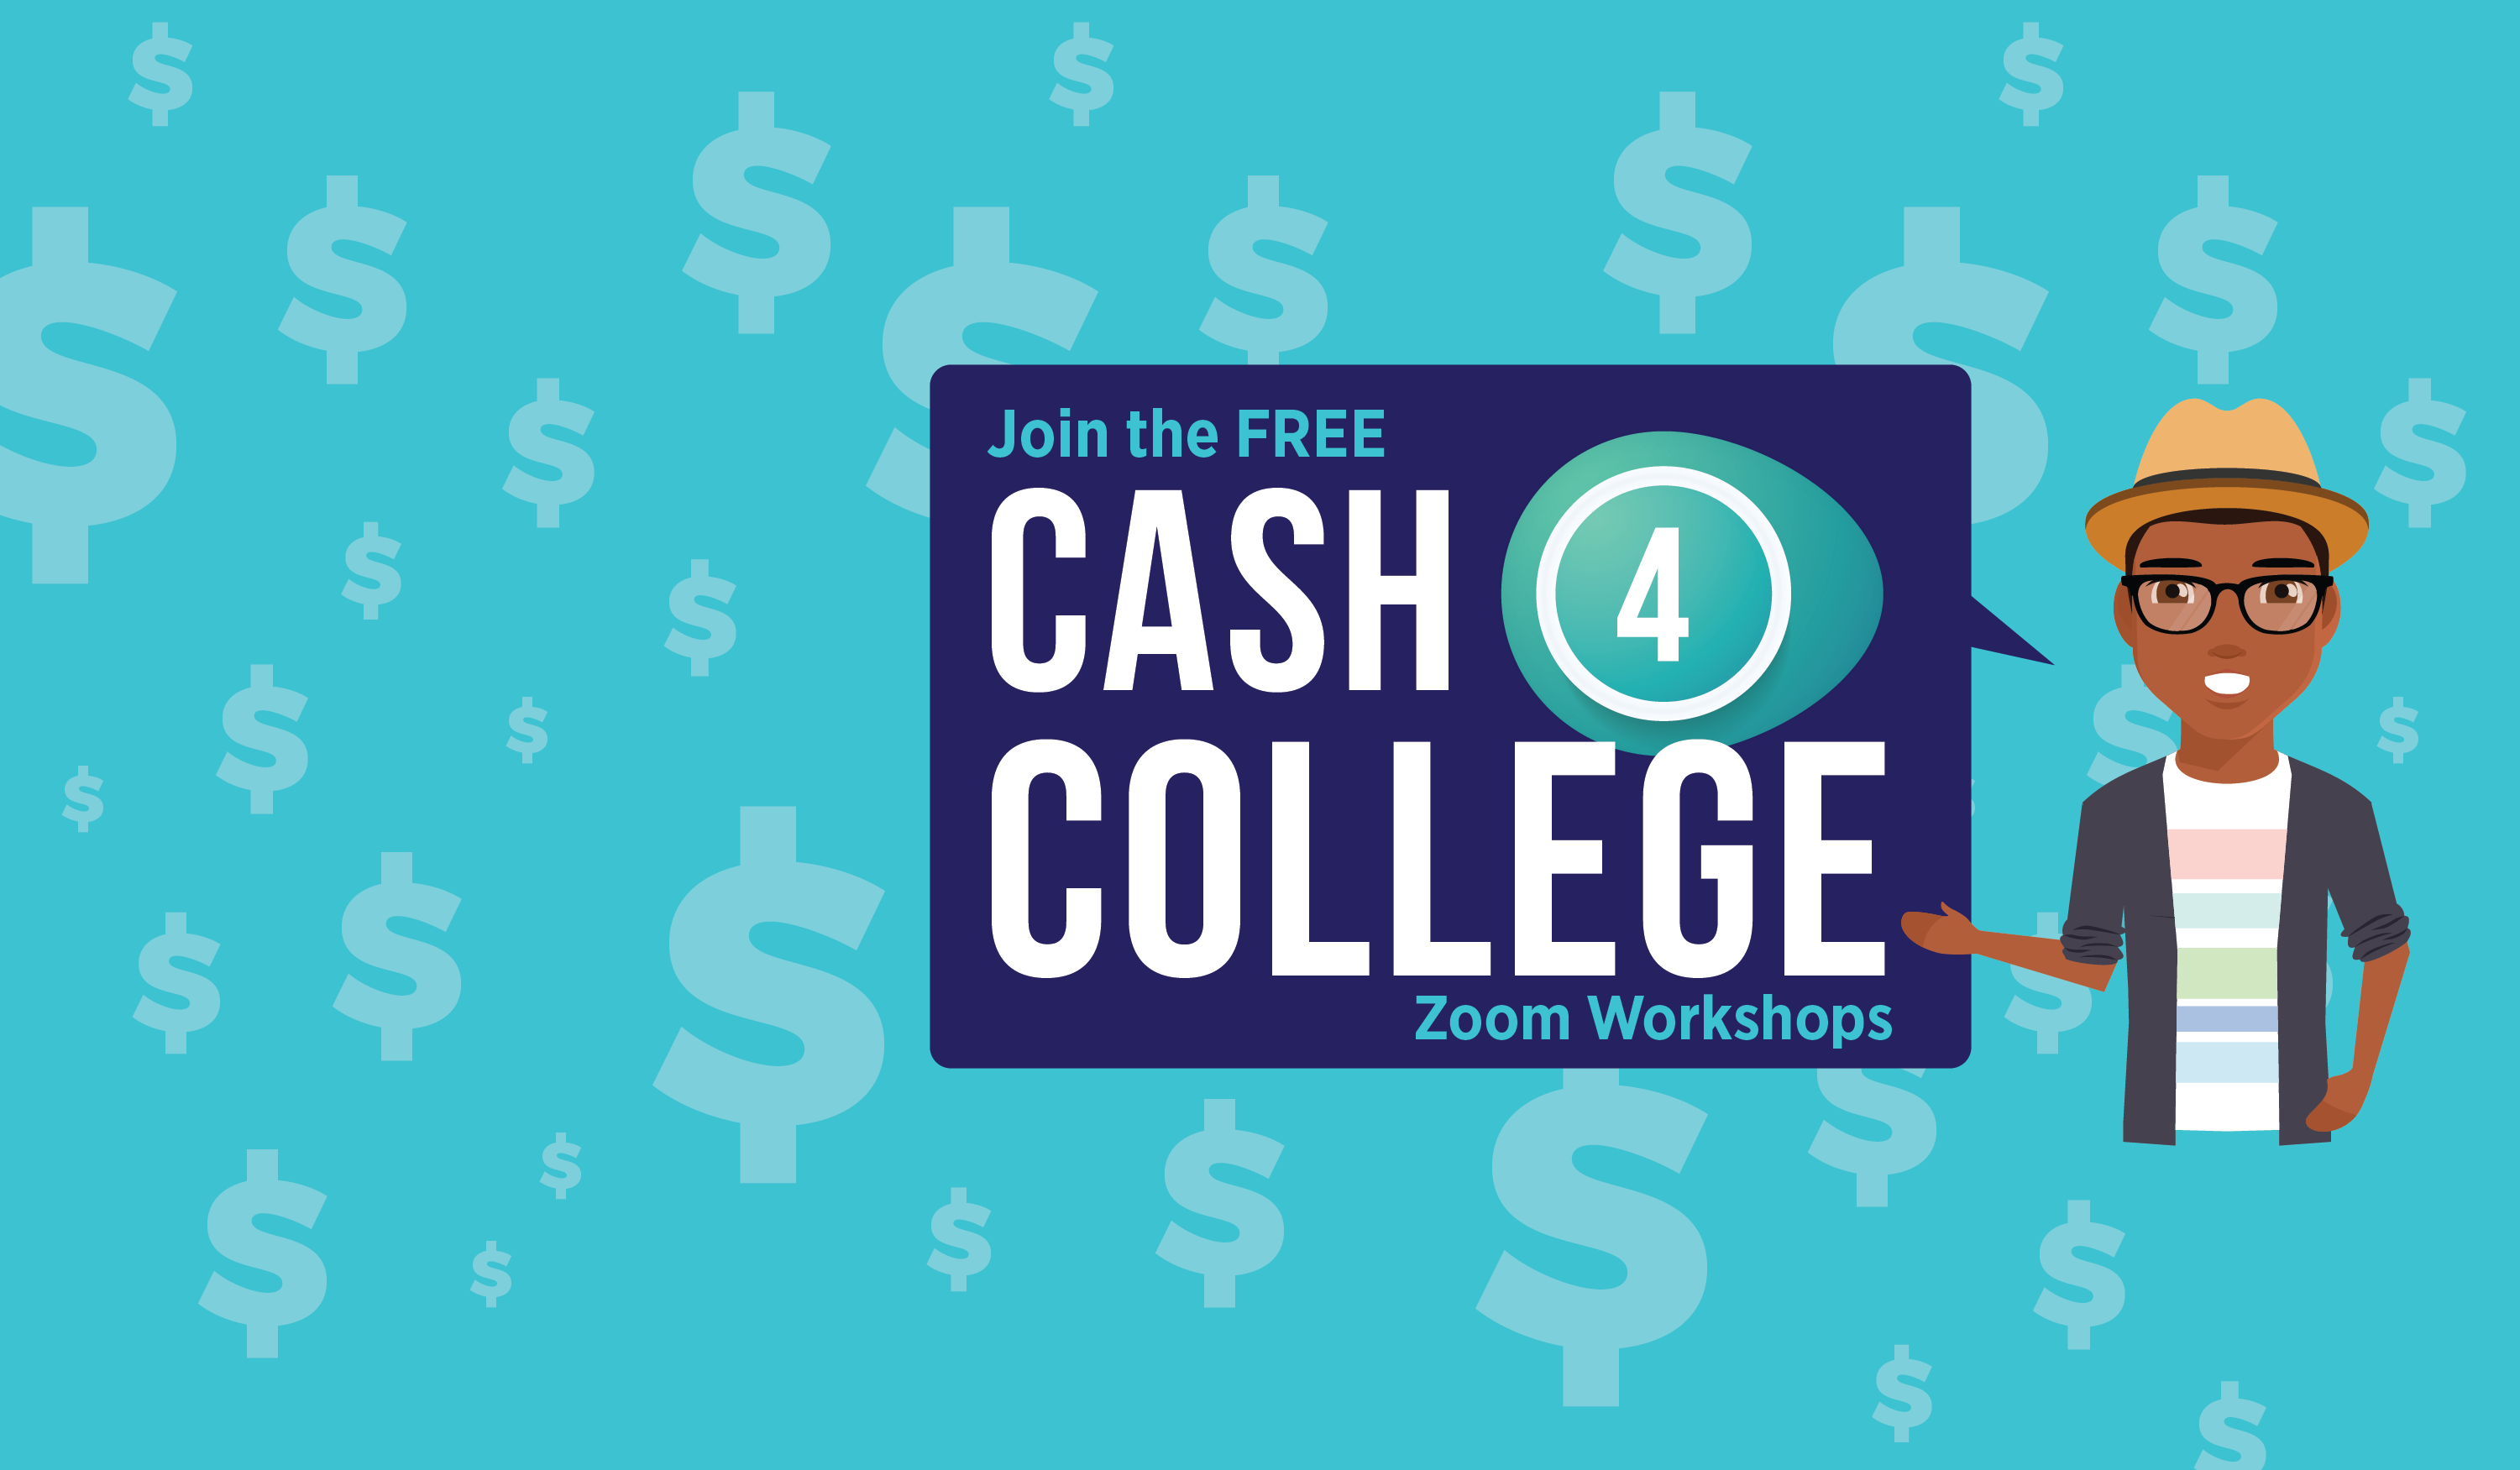 Join the Free Cash 4 College Zoom Workshops